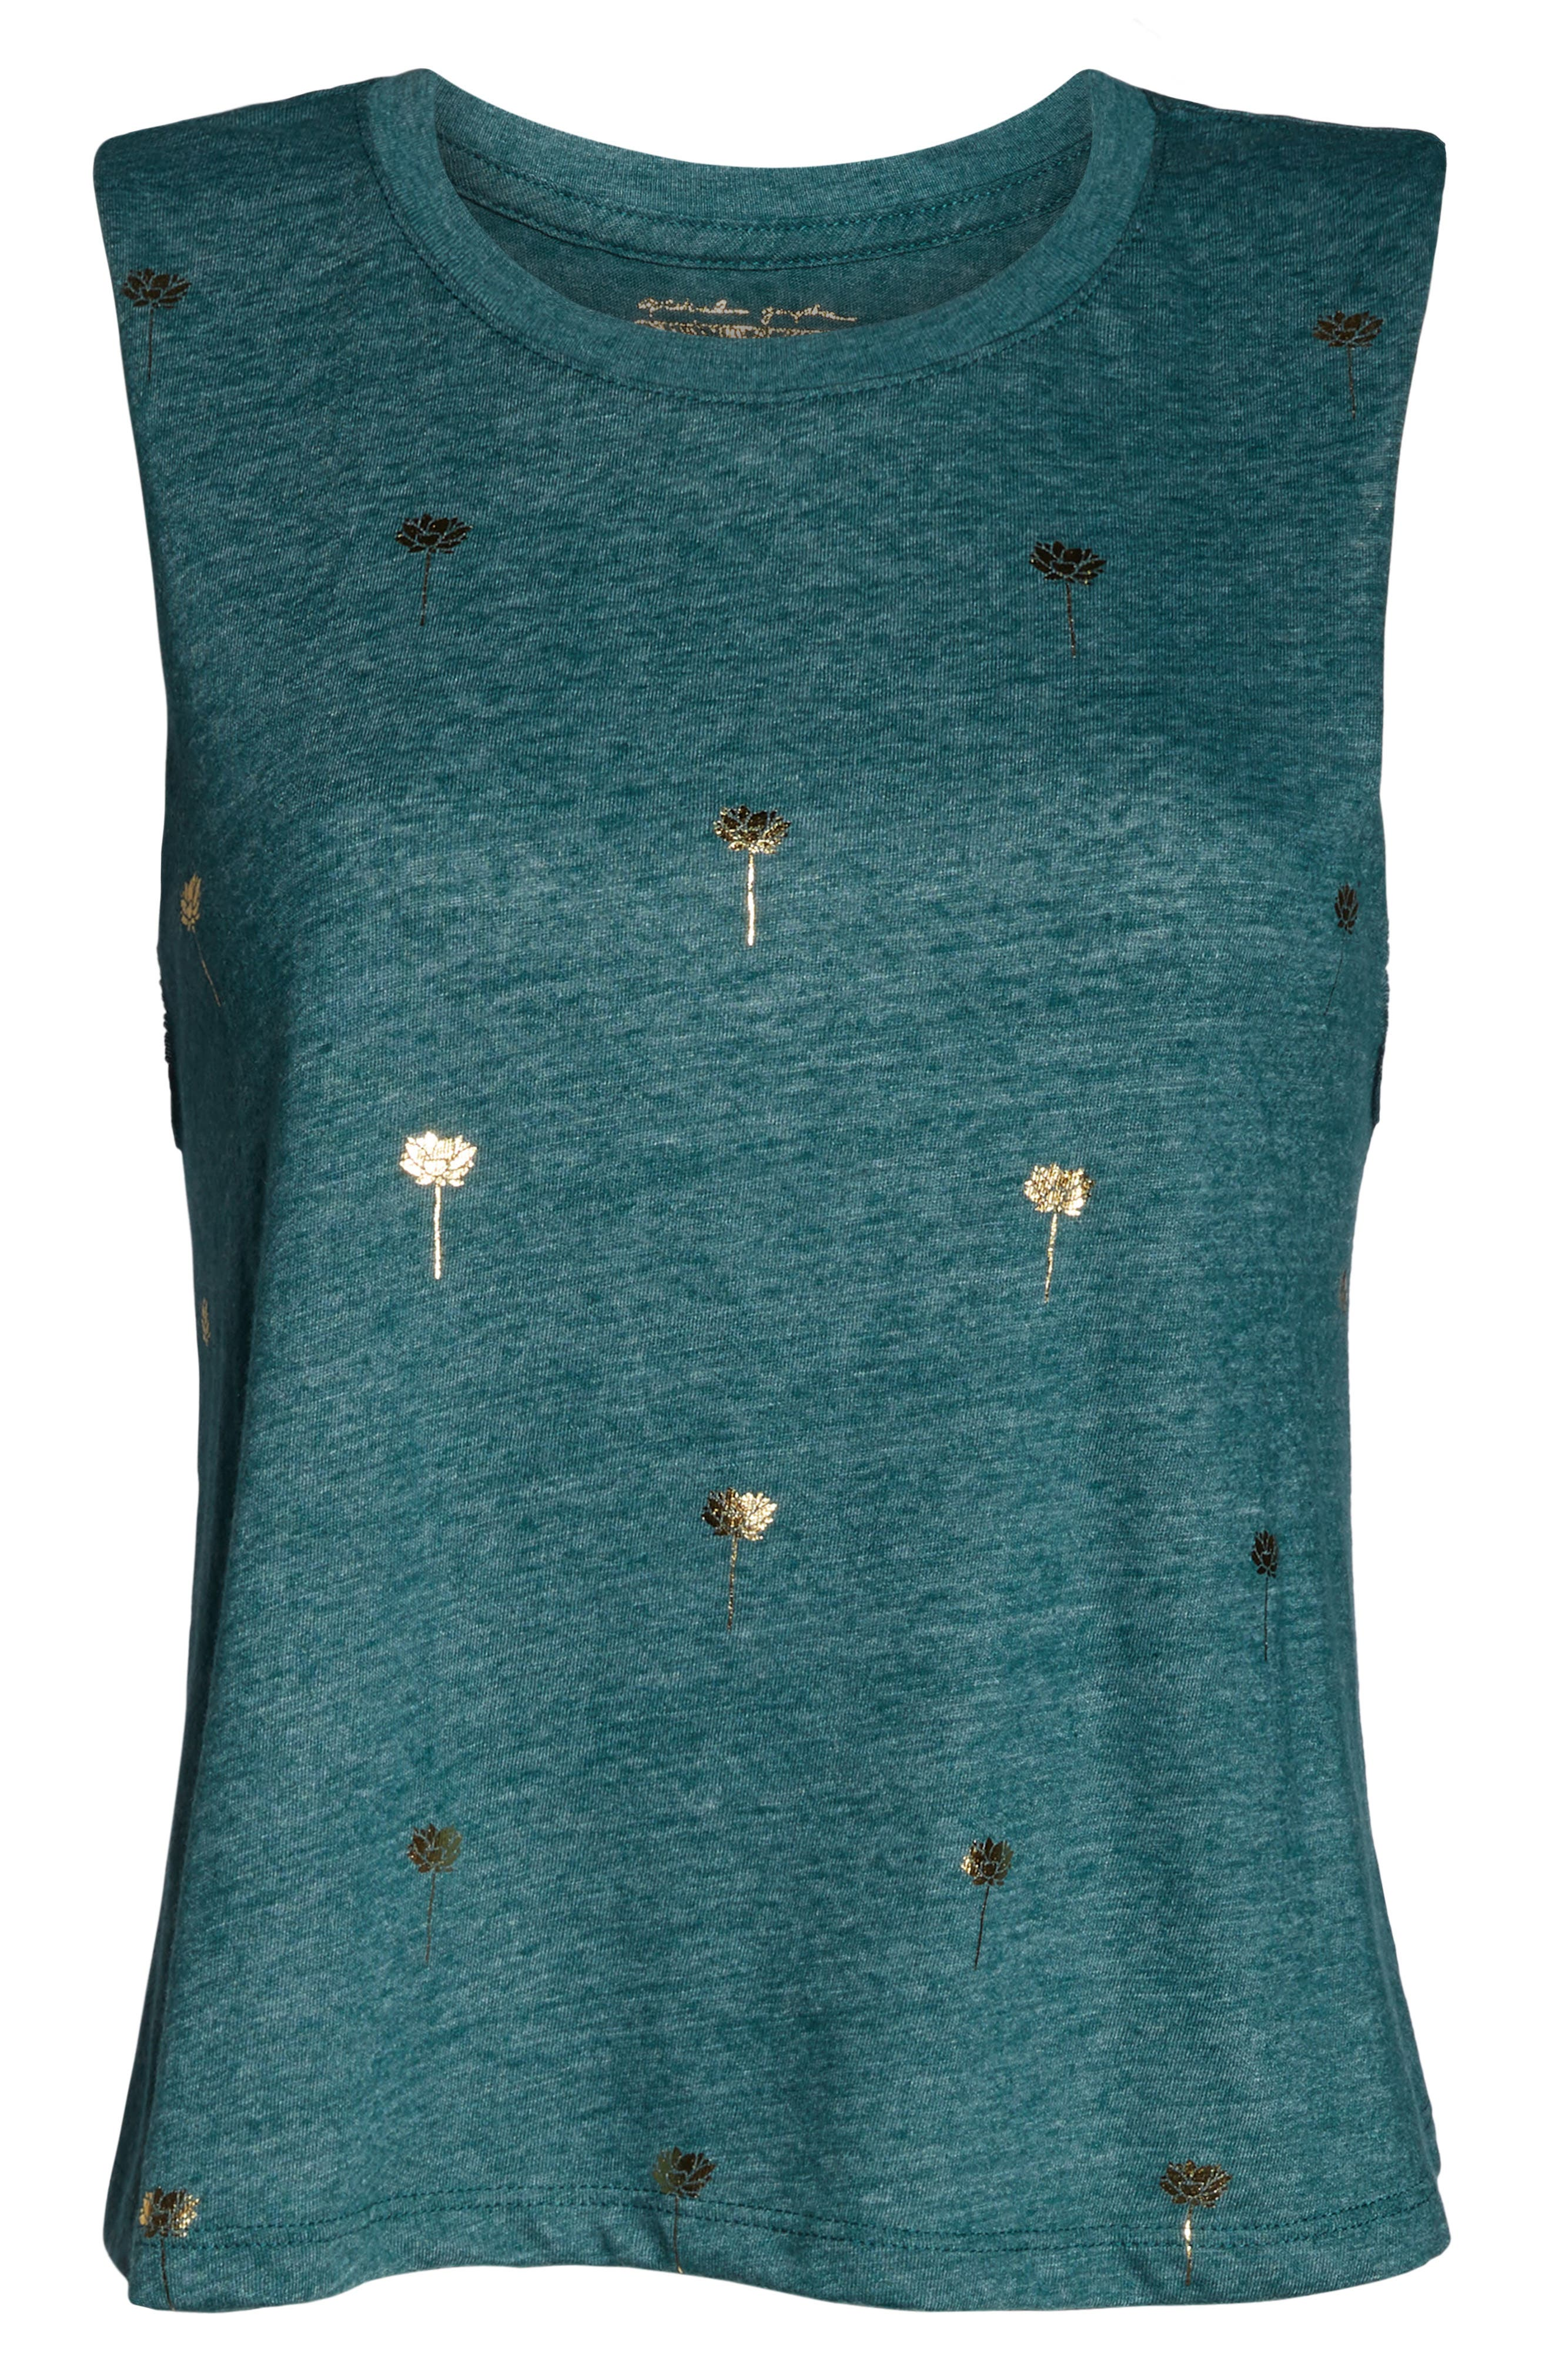 Mini Lotus Crop Tank,                             Alternate thumbnail 7, color,                             300